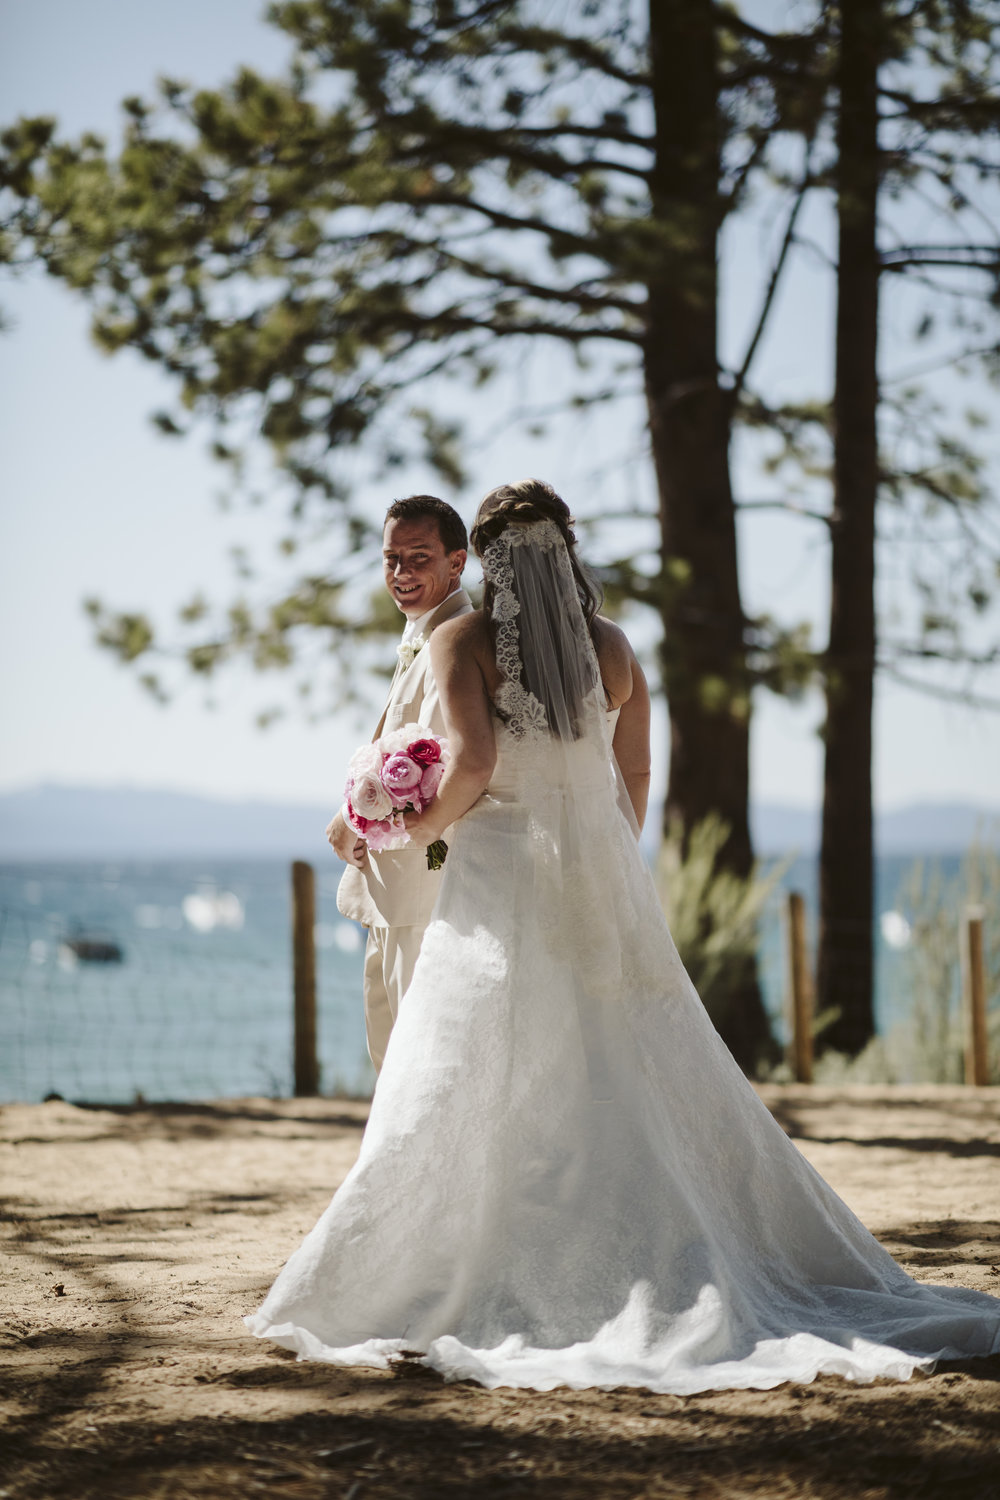 _P8A2218vildphotography-adventurewedding-tahoe-laketahoewedding-laketahoeweddingphotographer-tahoewedding-jamie-ed.jpg